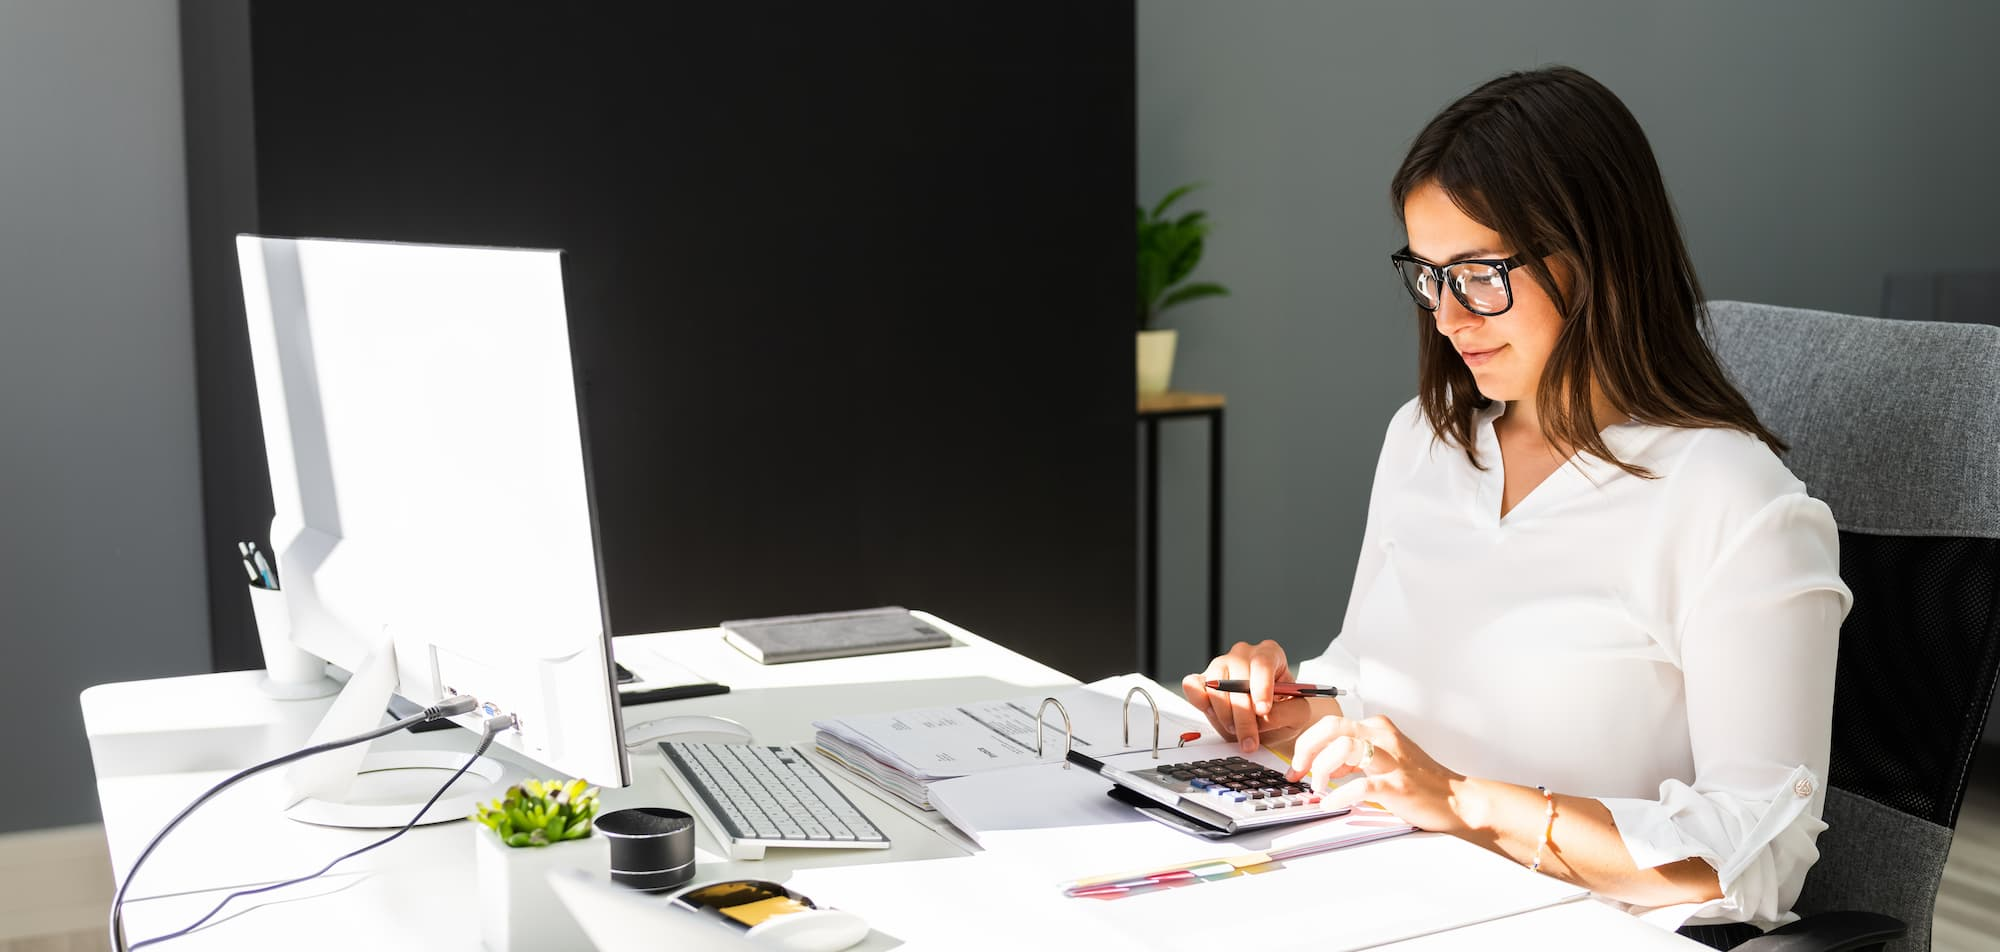 5 Ideas for Finding the Best Bookkeeping Services Online for Your Small Business